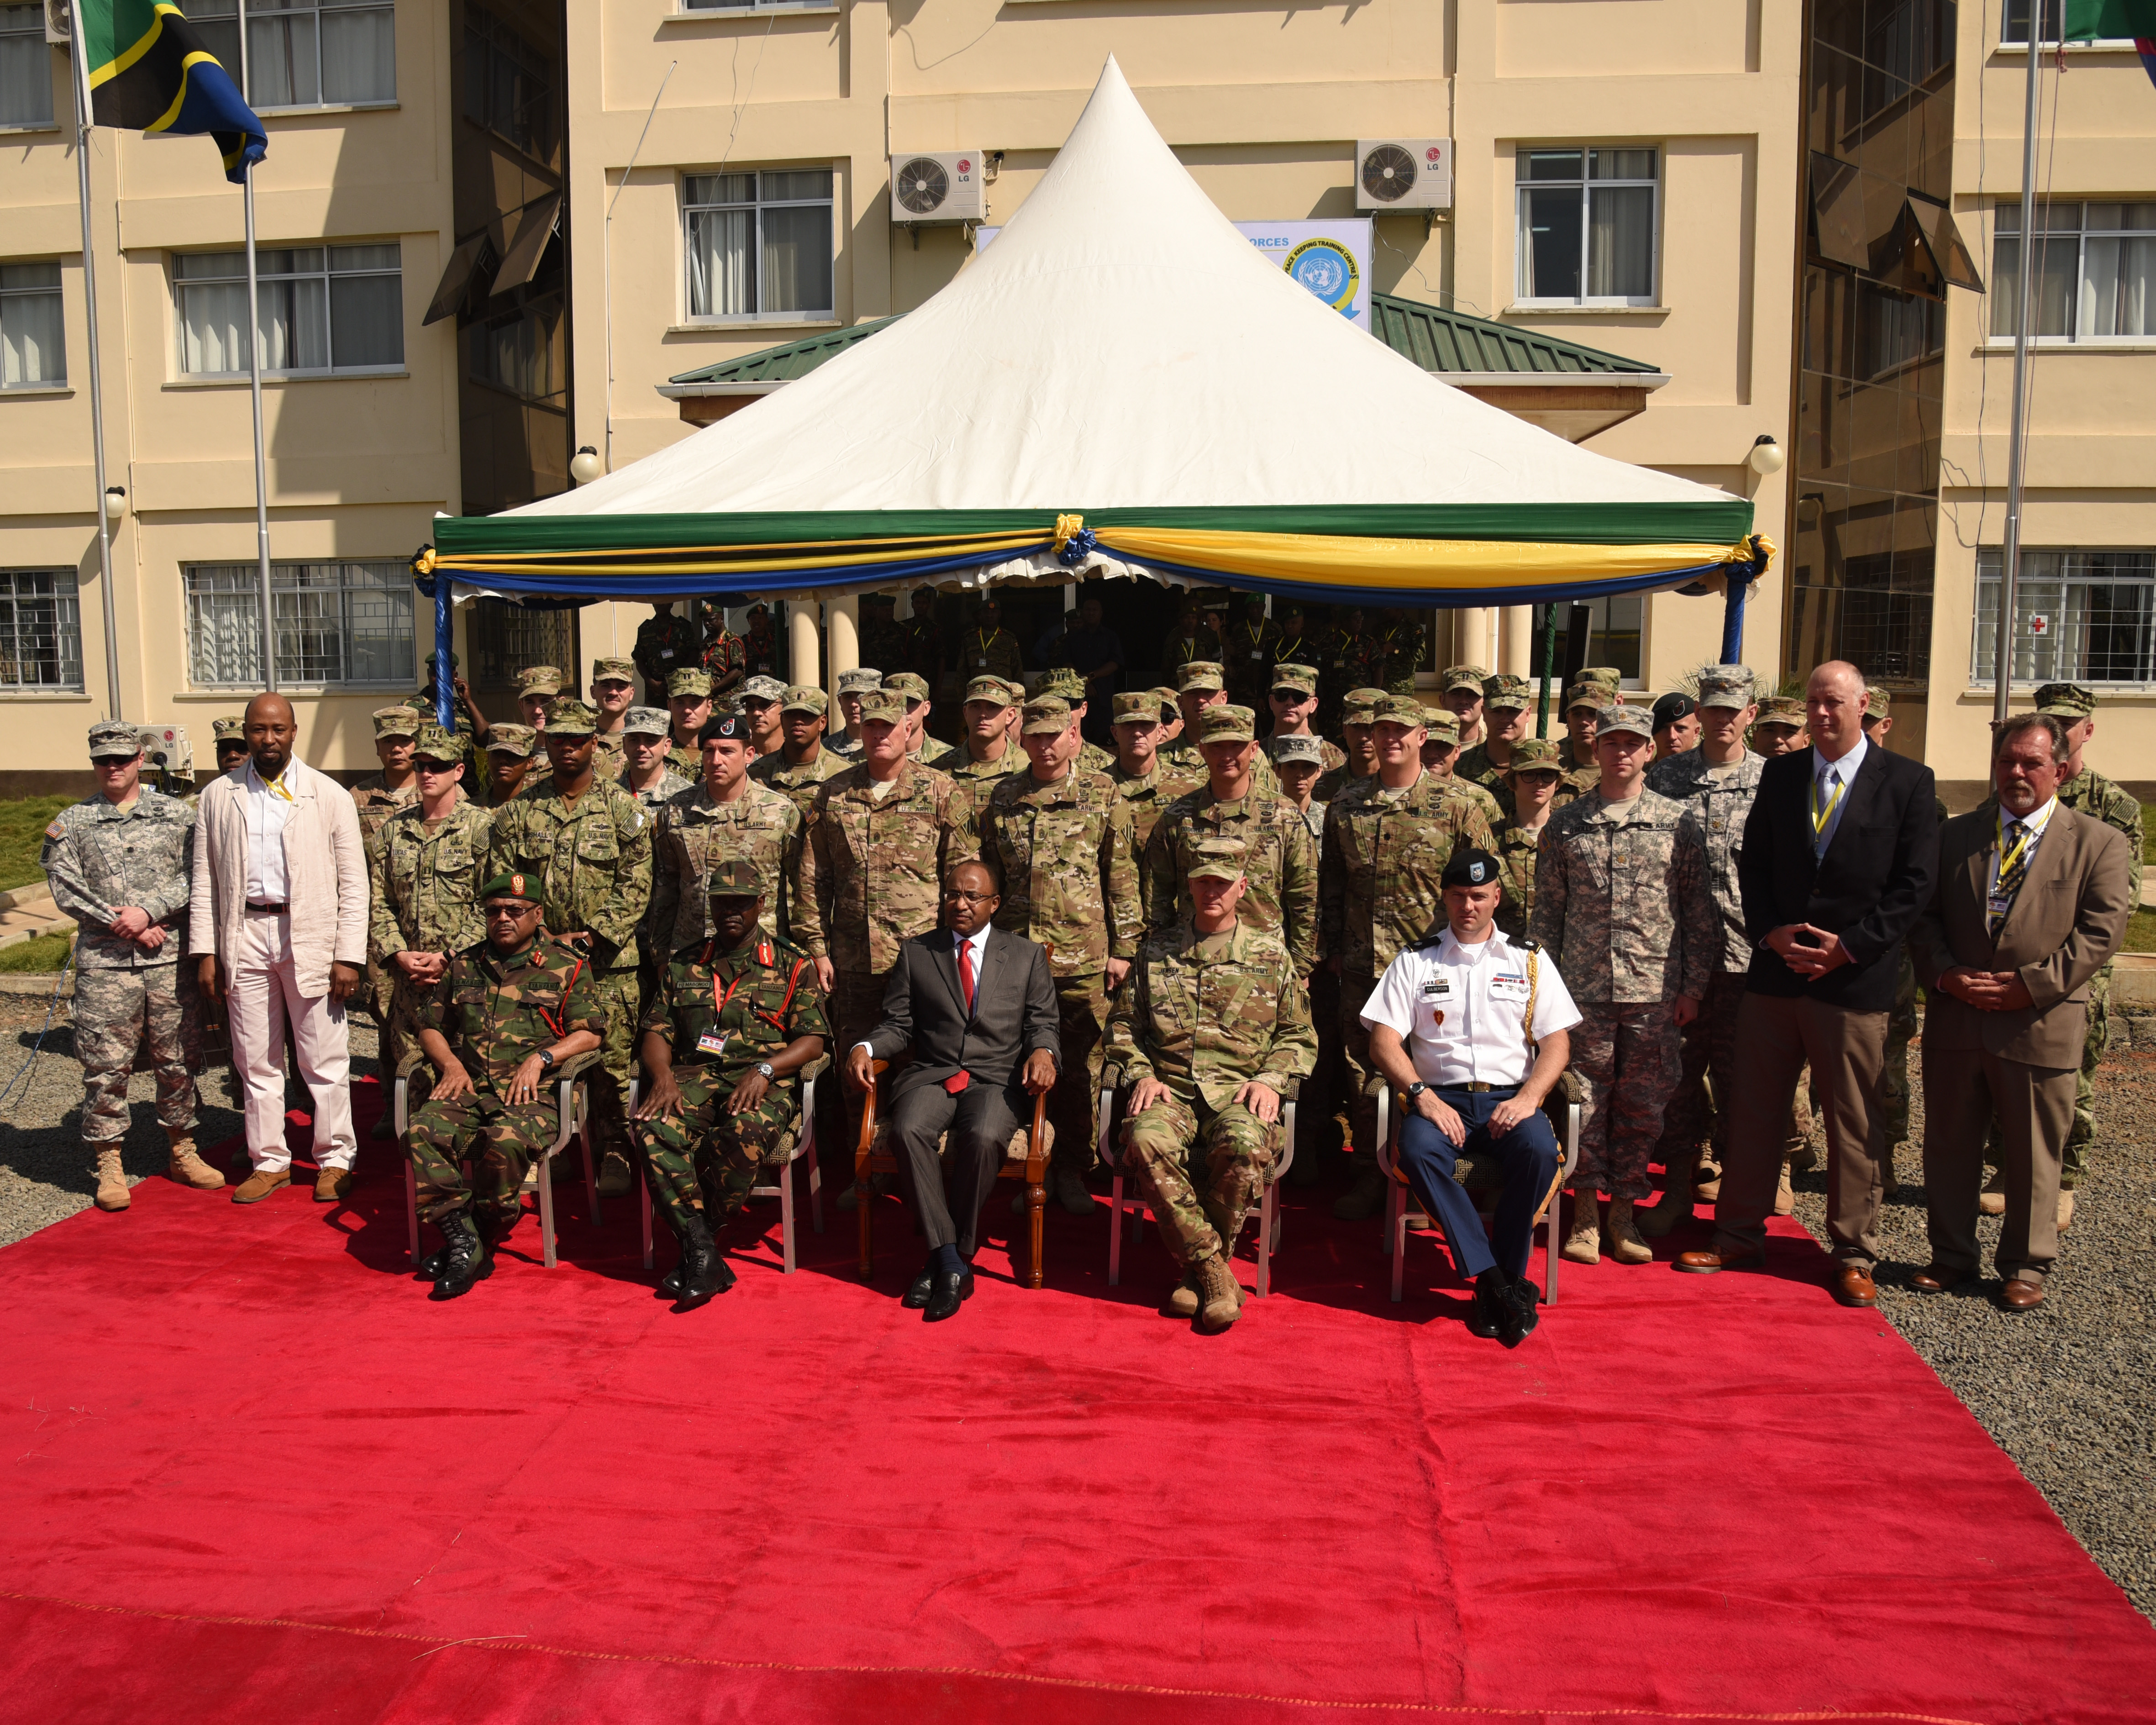 DAR ES SALAAM, Tanzania – Senior military leaders and Hussein Ali Mwyini, Minister of Defense and National Service, take a group photograph with the U.S. Eastern Accord 2016 participants at the Opening Ceremony at the Tanzanian Peacekeeping Training Centre on July 11, 2016, in Dar es Salaam, Tanzania. EA16 is an annual, combined, joint military exercise that brings together partner nations to practice and demonstrate proficiency in conducting peacekeeping operations. (U.S. Air Force photo by Staff Sgt. Tiffany DeNault/Released)